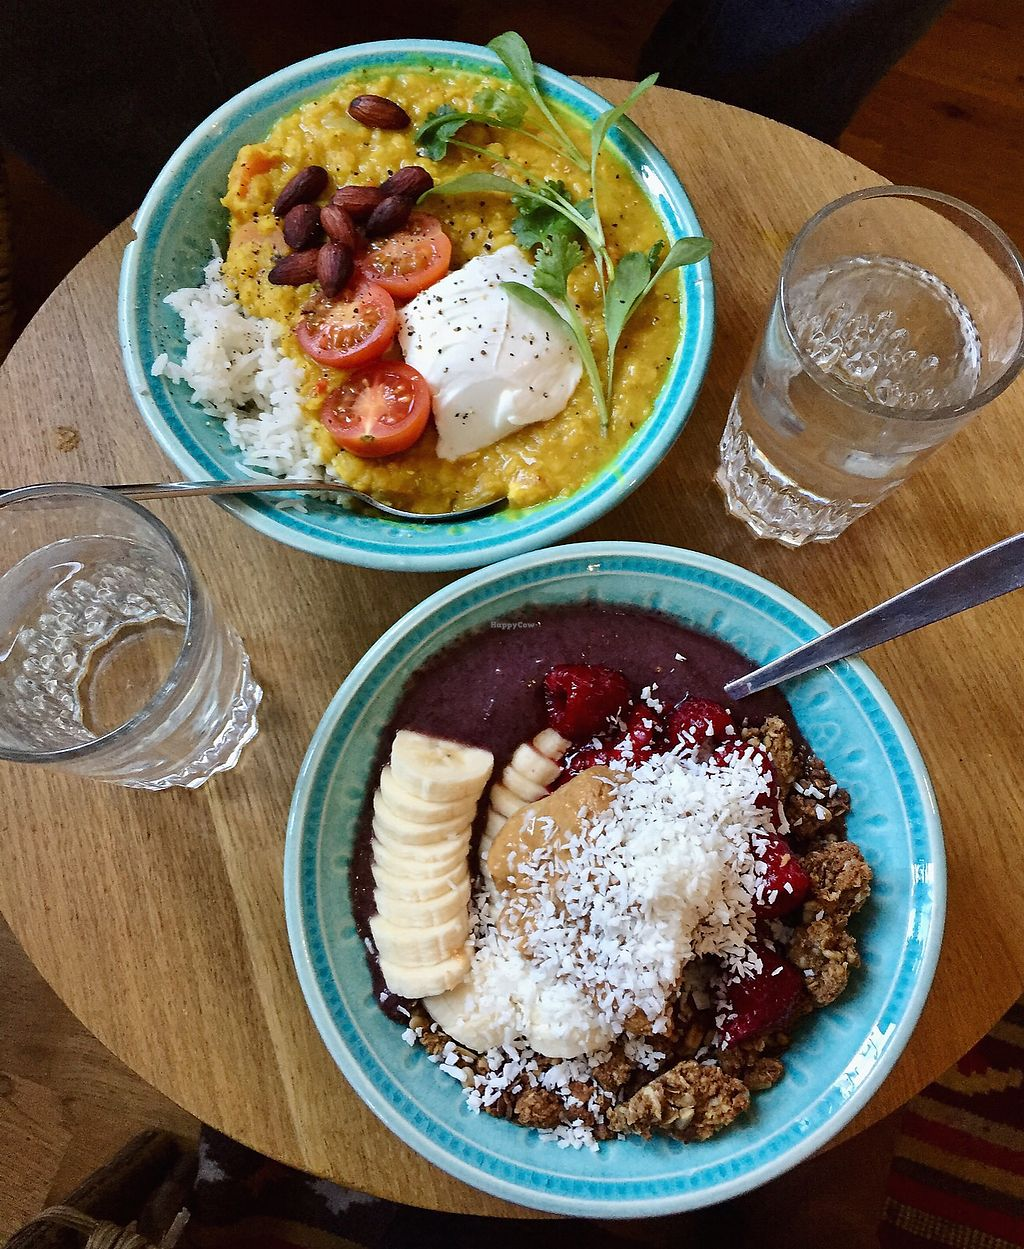 """Photo of Lotta Love  by <a href=""""/members/profile/agatonluna"""">agatonluna</a> <br/>The warm dish of the week and classic acai bowl <br/> February 24, 2018  - <a href='/contact/abuse/image/53915/363365'>Report</a>"""